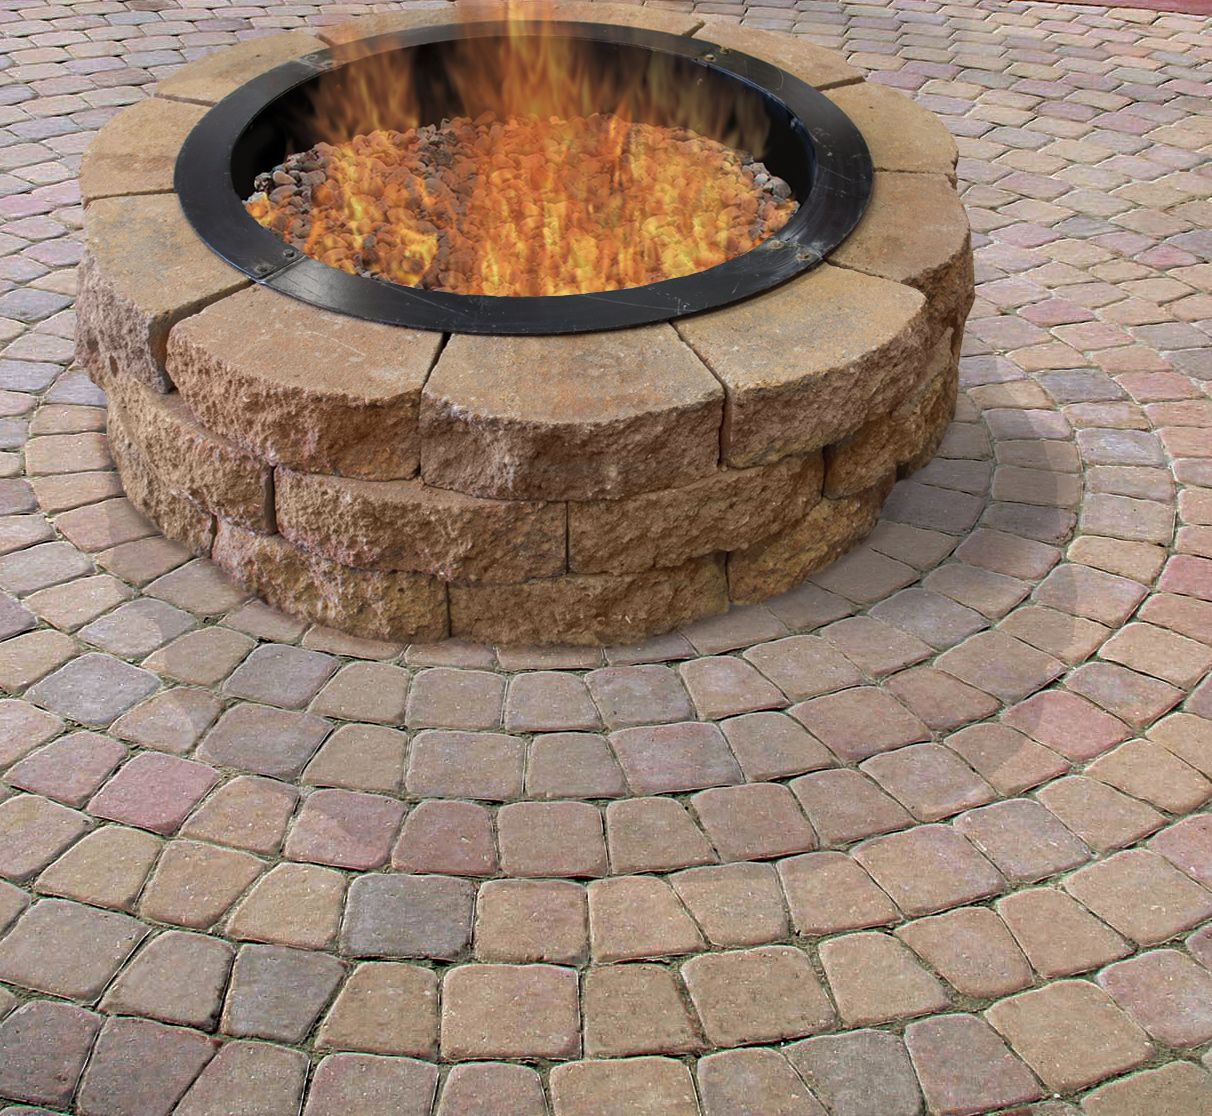 Landscape Patio Menards Patio Blocks For Cozy Your: Turn Up The Heat In Your Yard With The Crestone Fire Ring